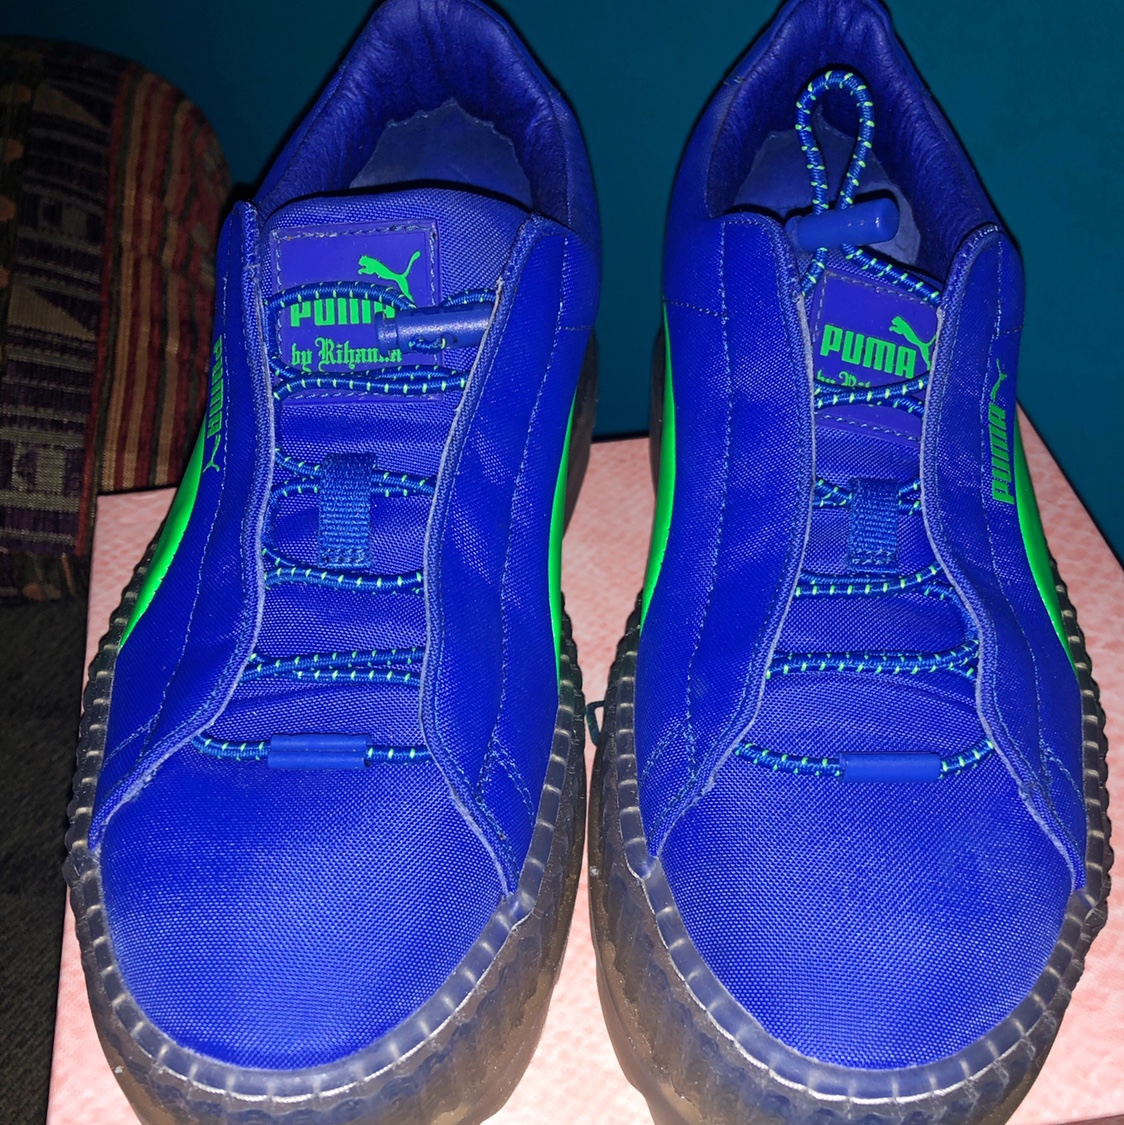 separation shoes 894c0 4715f Puma Cleated Creeper Surf Rihanna Fenty Blue AND ... - Depop